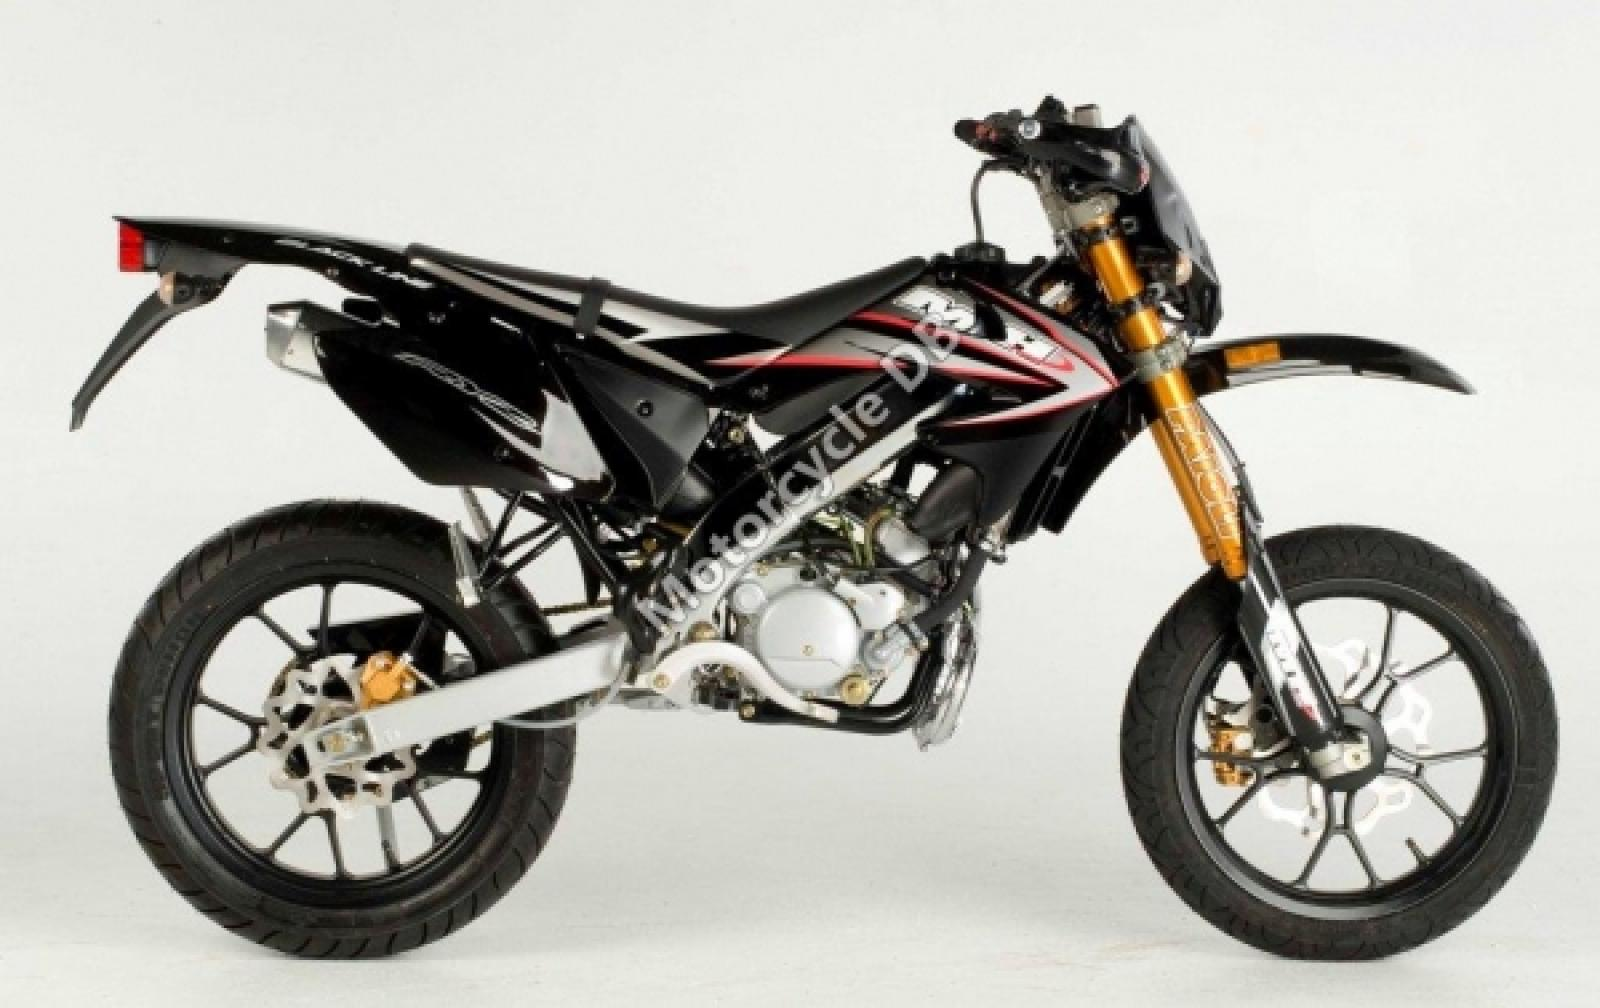 Motorhispania RYZ 49 Supermotard images #112560